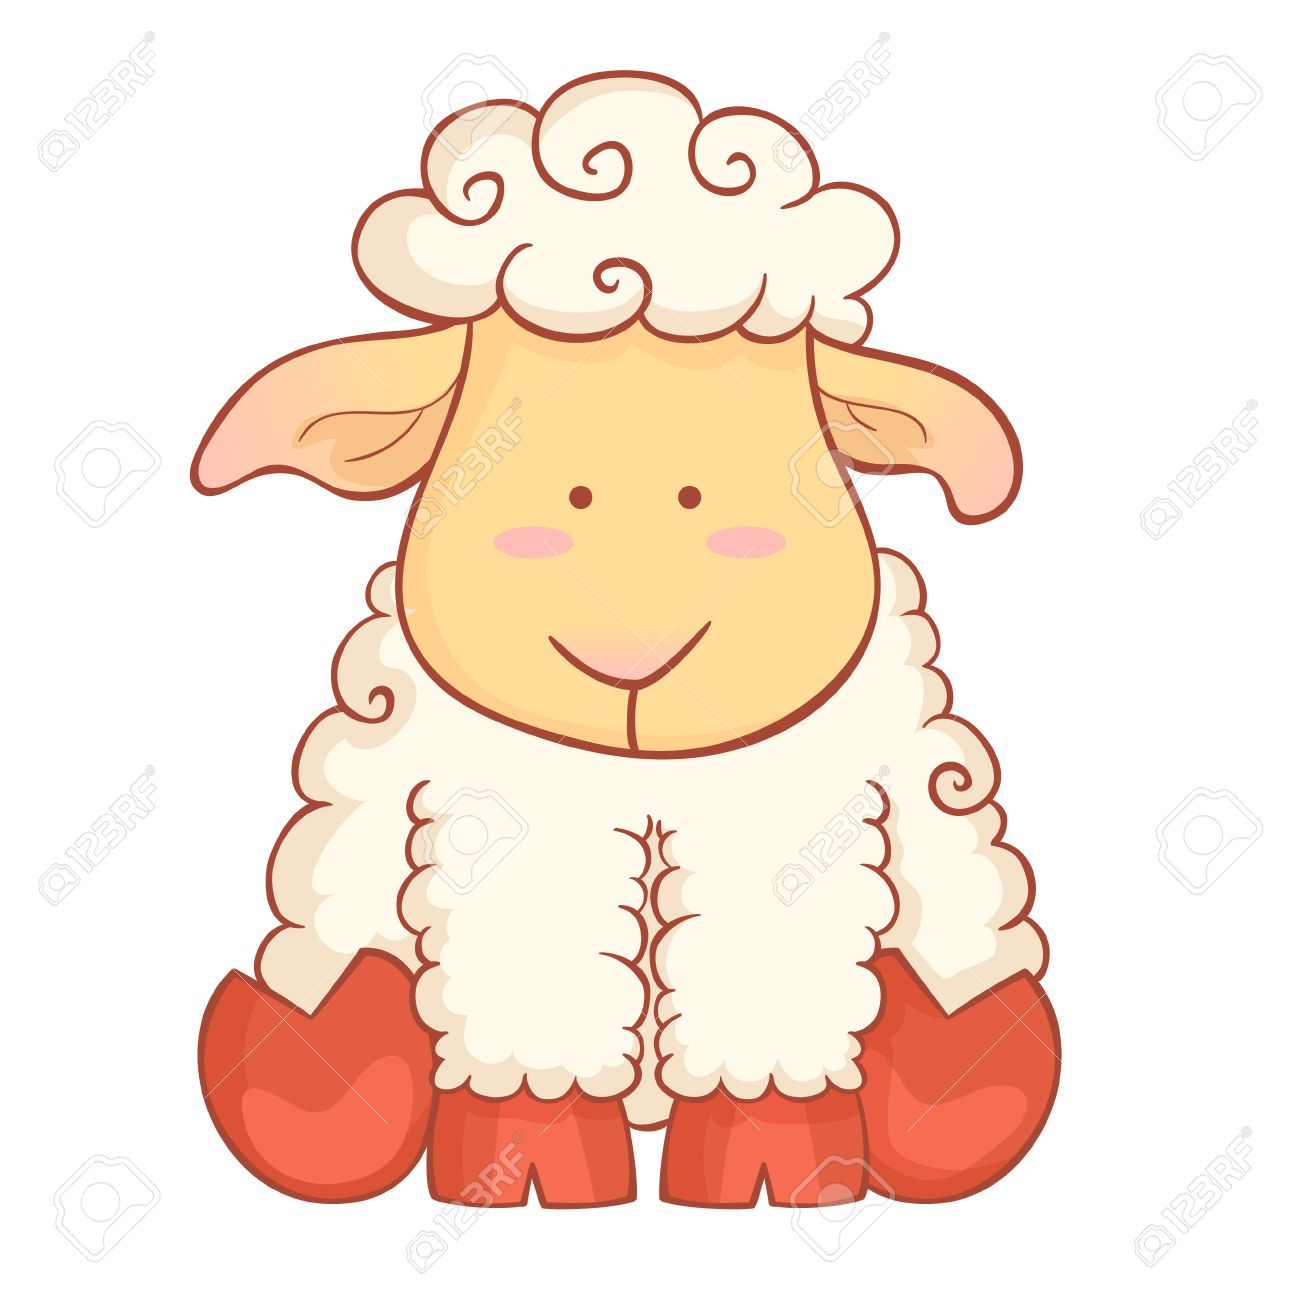 Cute Cartoon Baby Sheep Character Of Chinese New Year Symbol ... for cute animated sheep  186ref